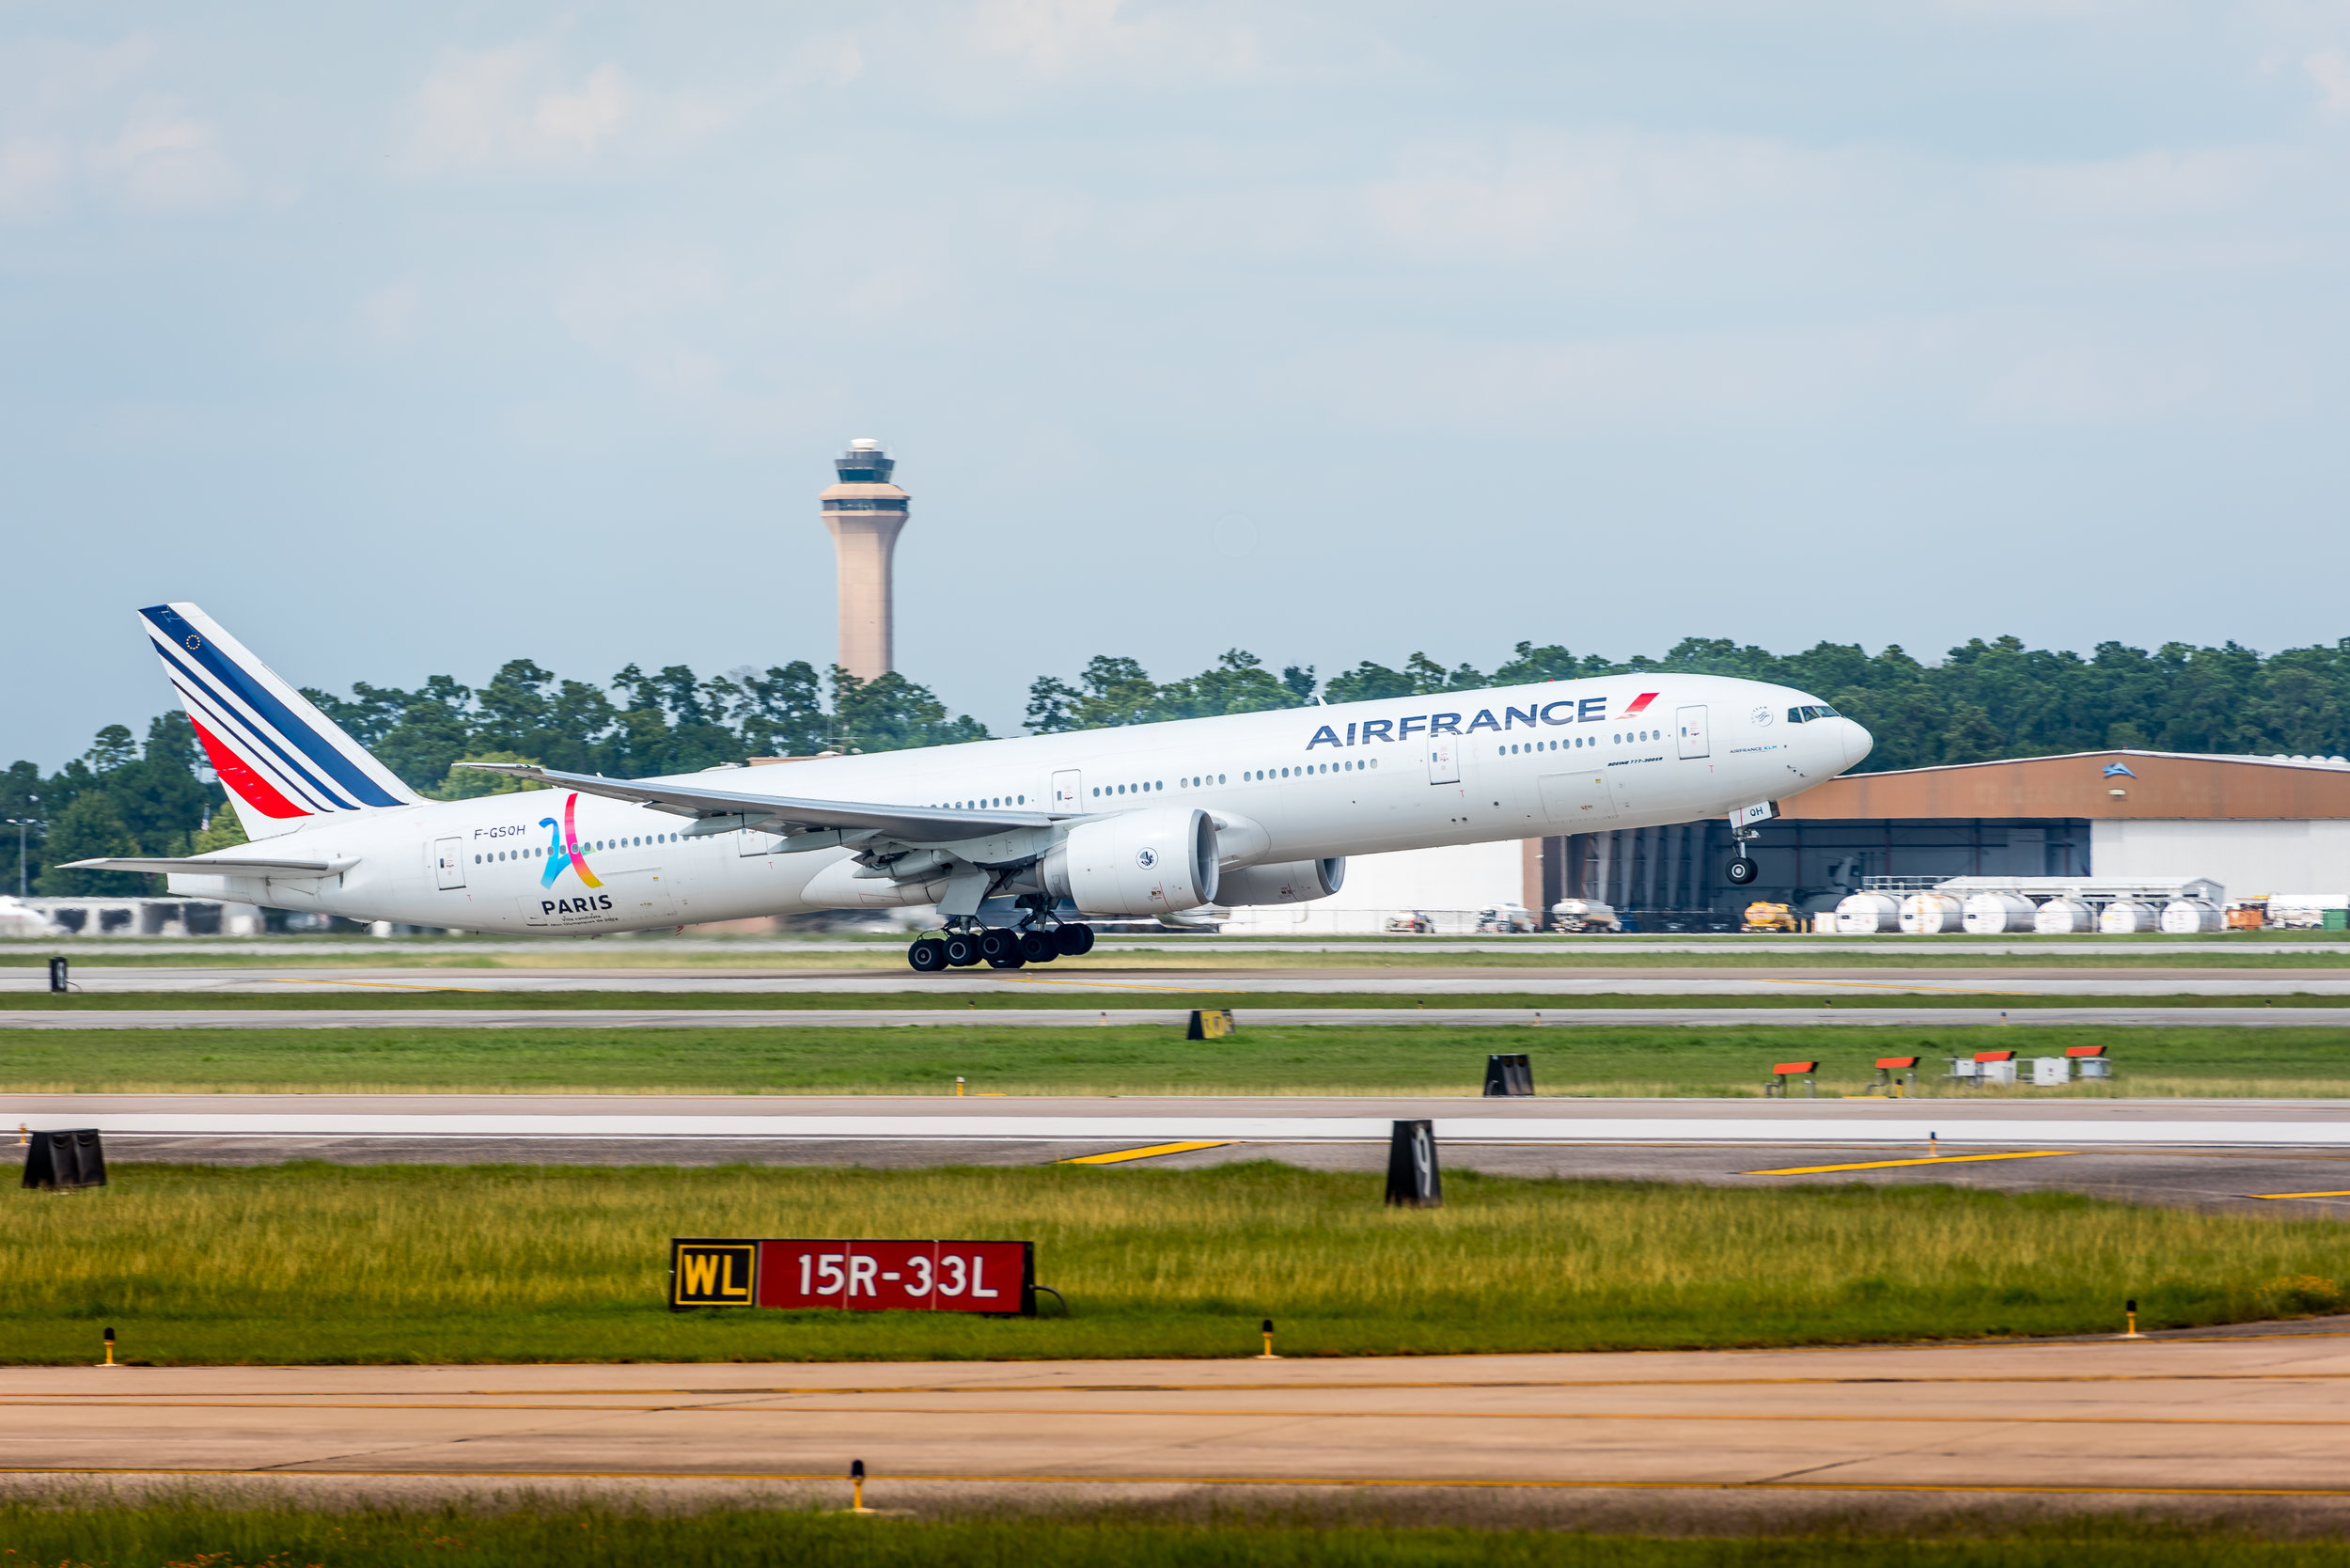 Air France 777-300ER with the control tower keeping a watchful eye